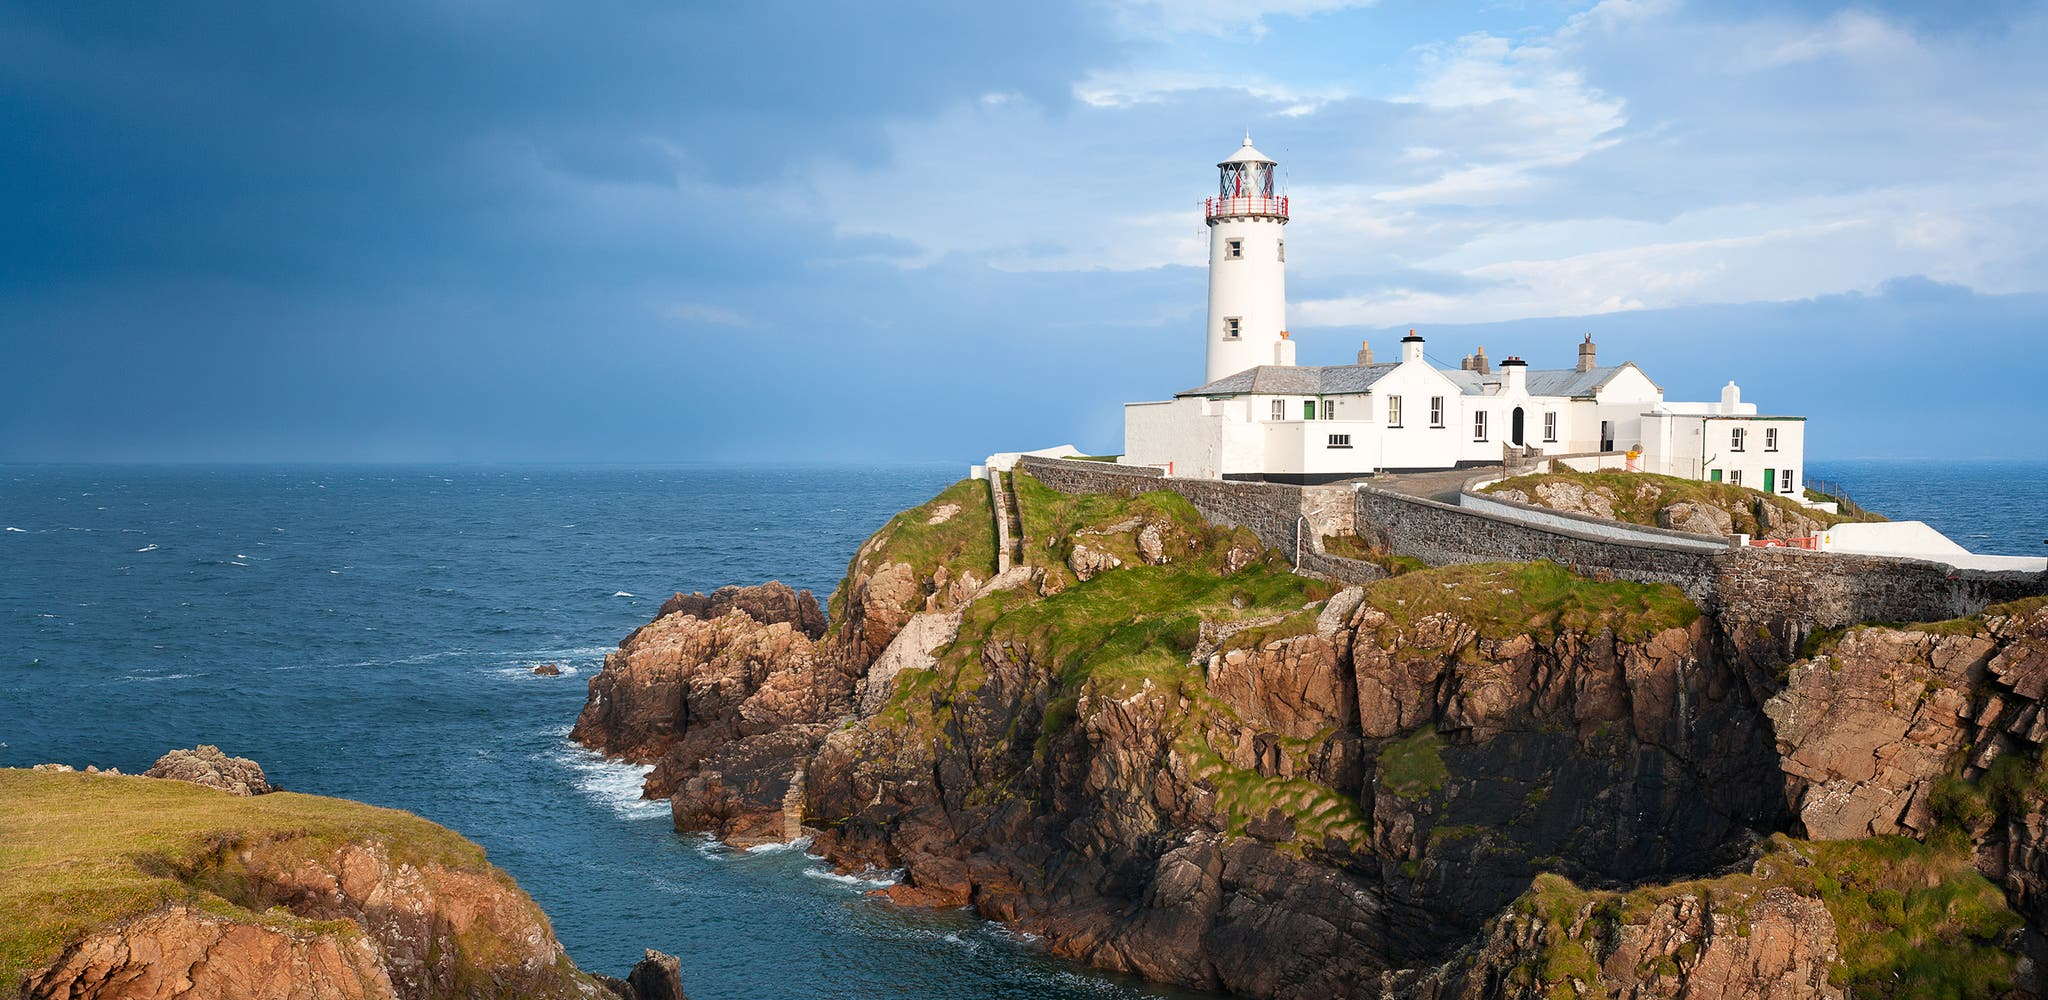 Cheap Flights - To and from Dublin, Europe, Britain & North